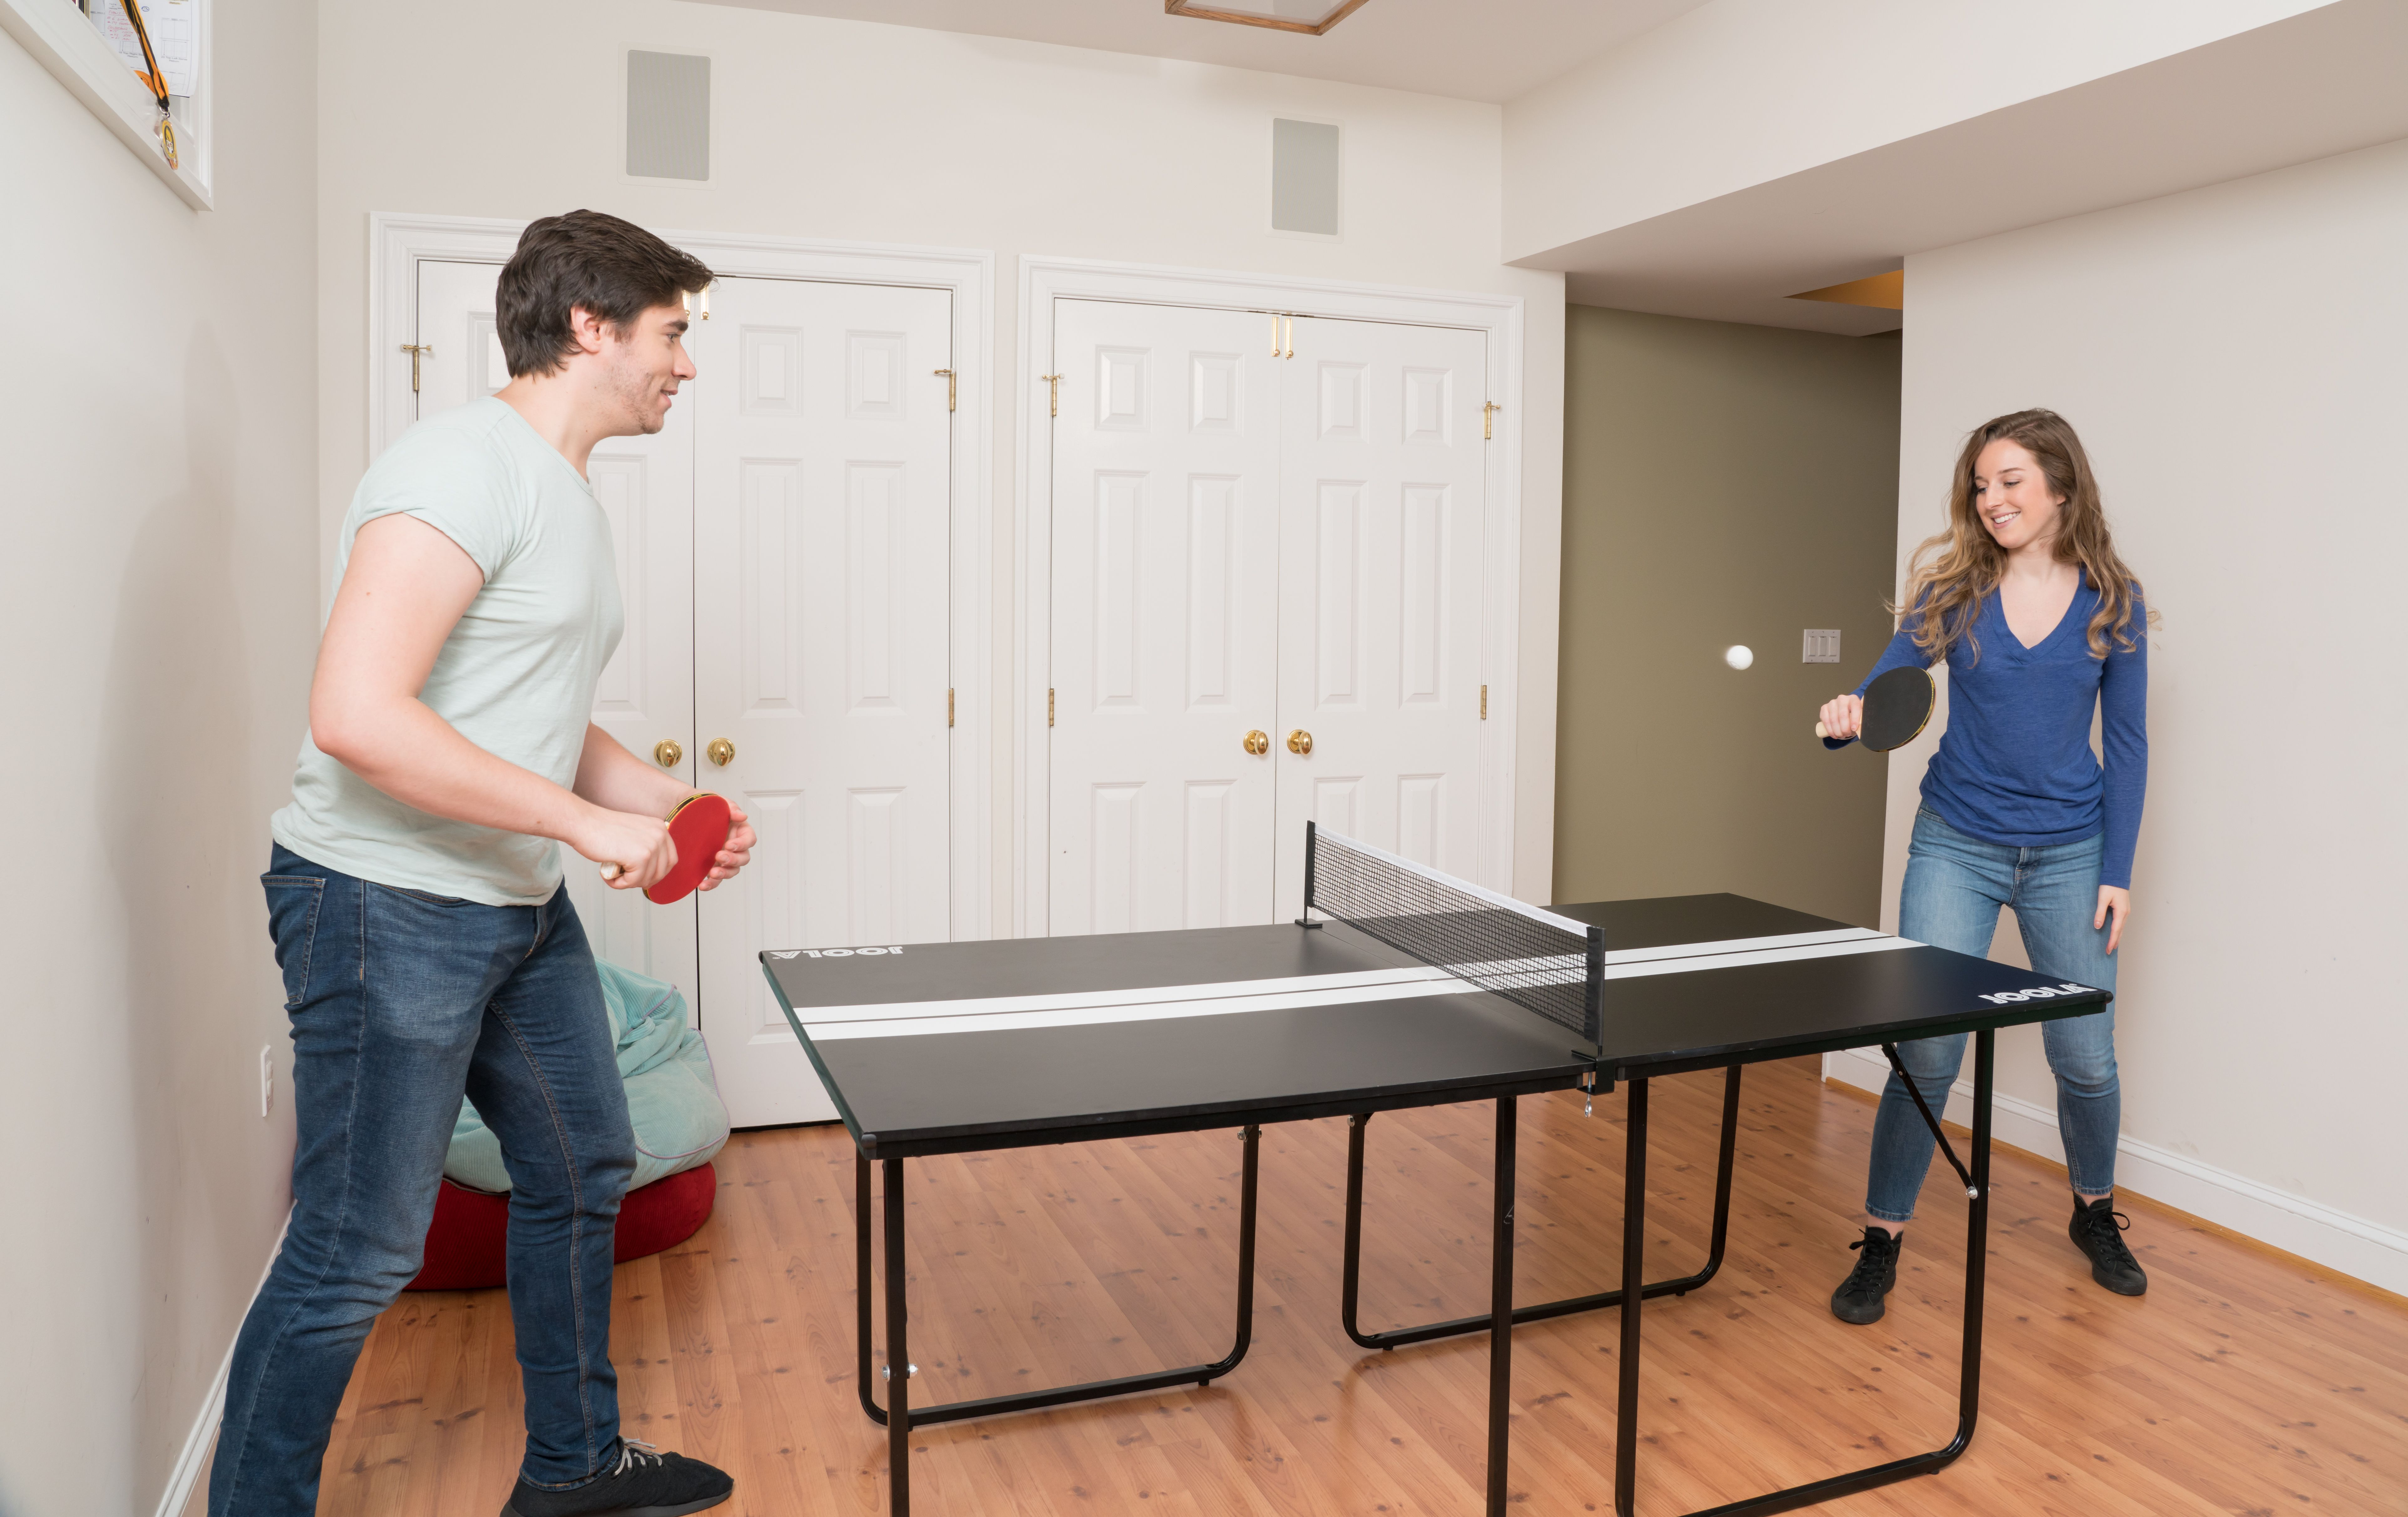 Midsize Sport Table Tennis Table In 2020 Table Height Table